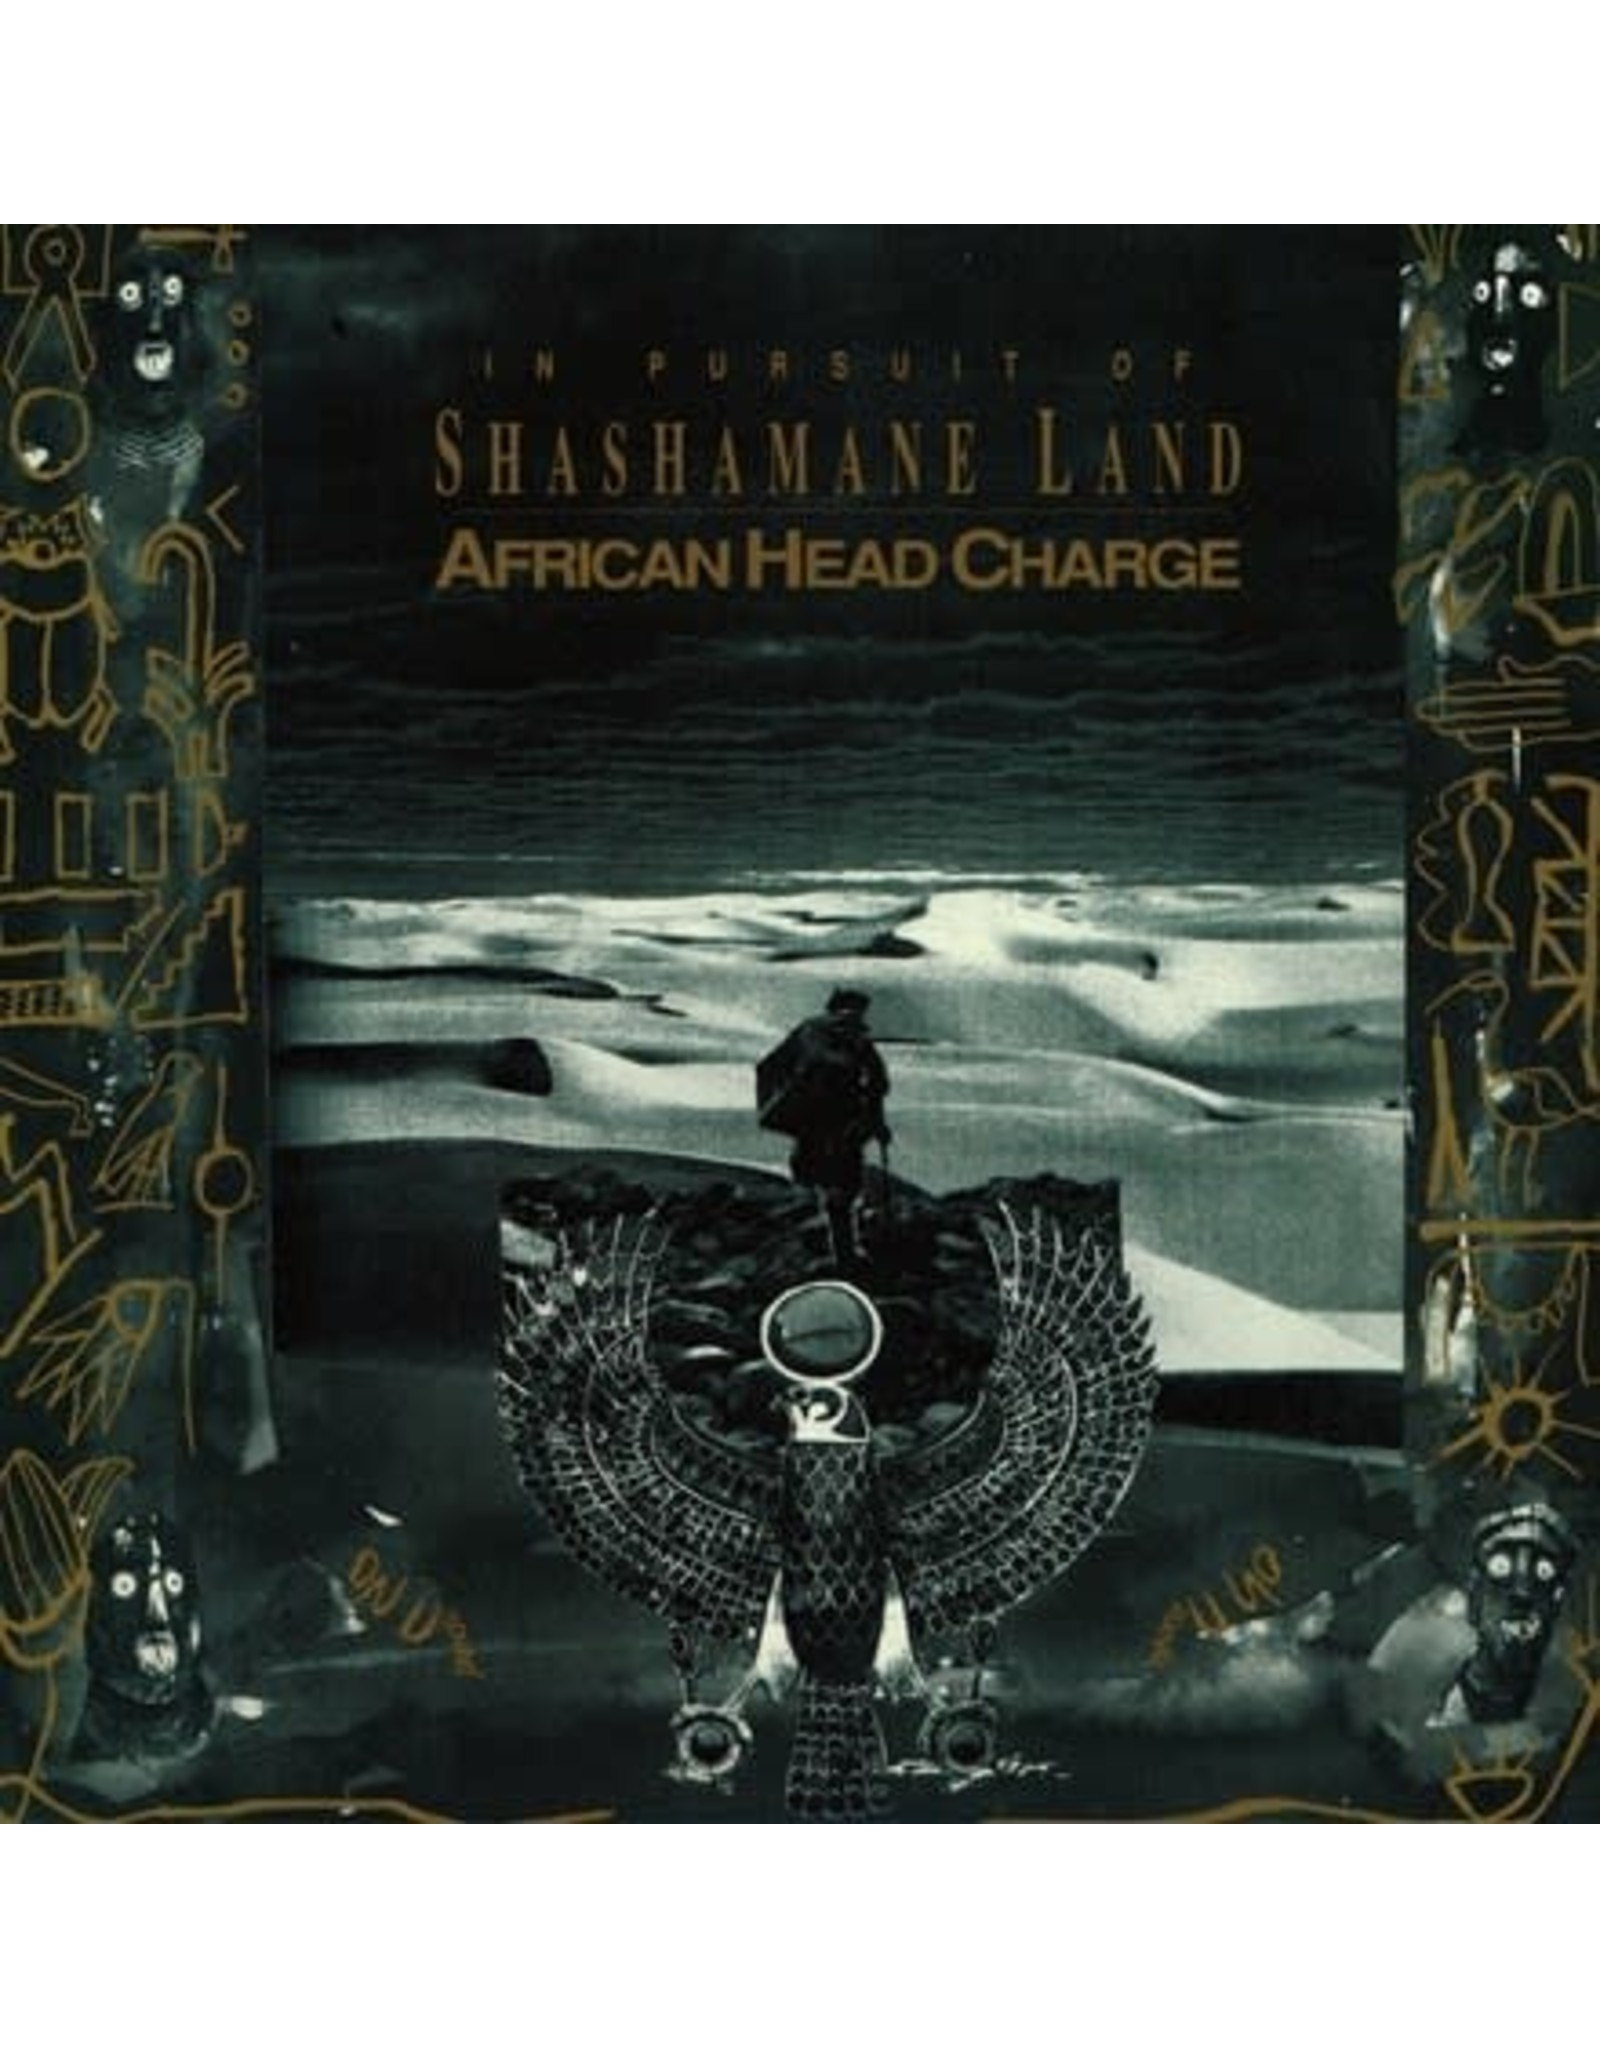 On-U Sound African Head Charge: In Pursuit Of Shashamane Land LP